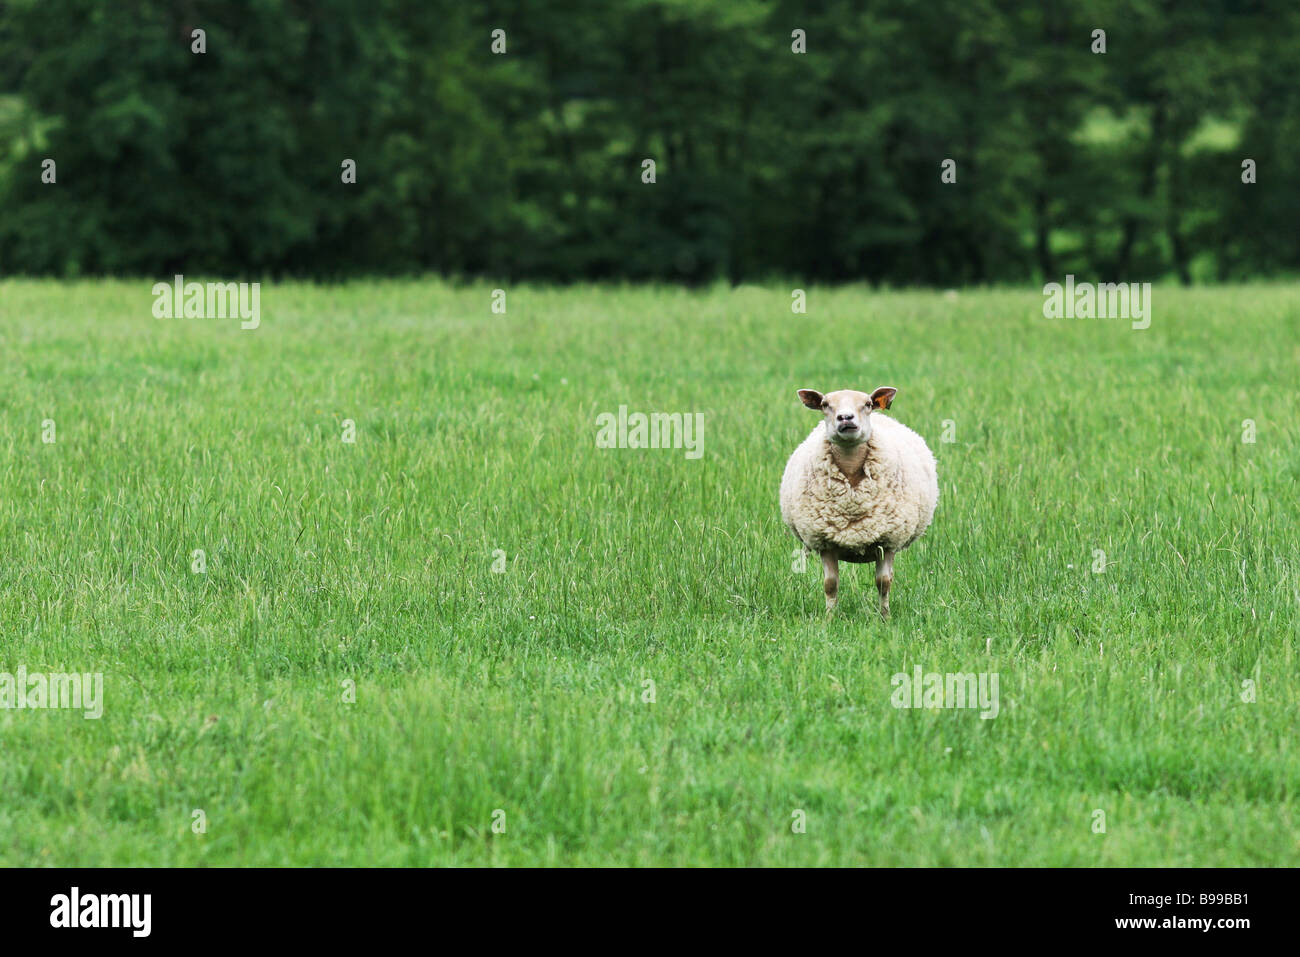 Solitary sheep in field - Stock Image